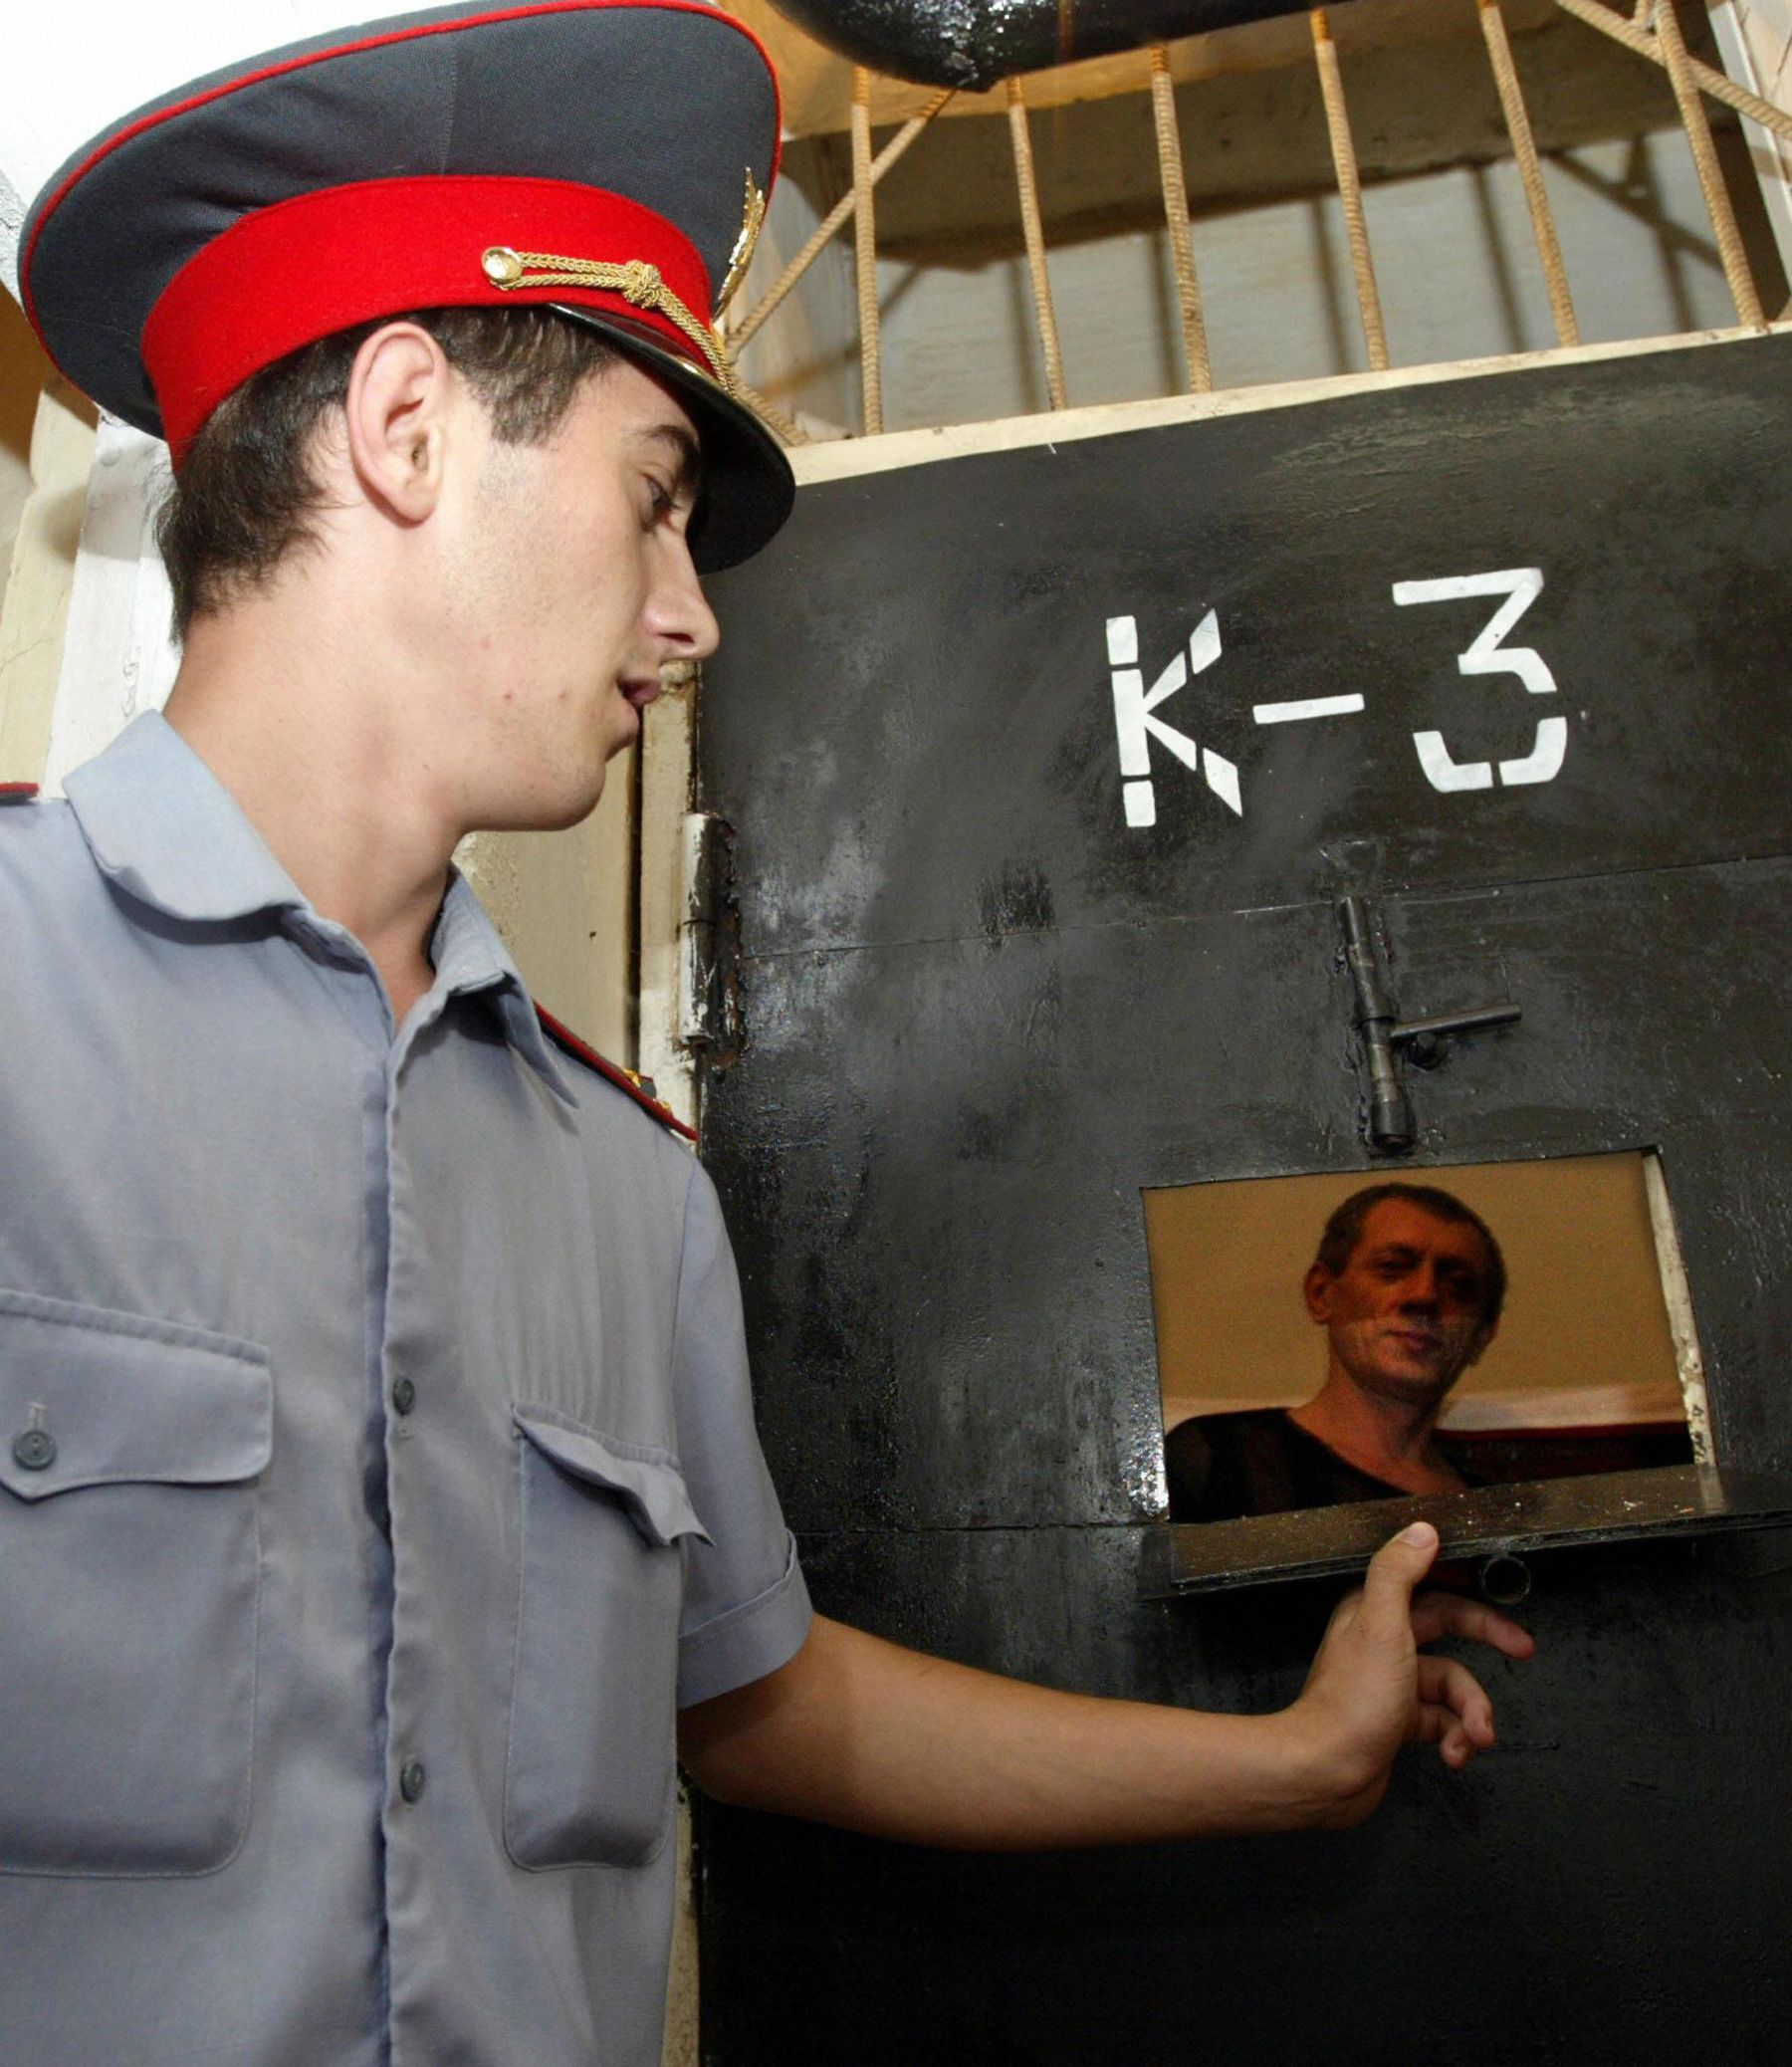 A Chechen policeman looks into the cell in one of the prisons in Grozny, 26 August 2003, at a suspected murderer.    (Photo credit should read ALEXANDER NEMENOV/AFP/Getty Images)